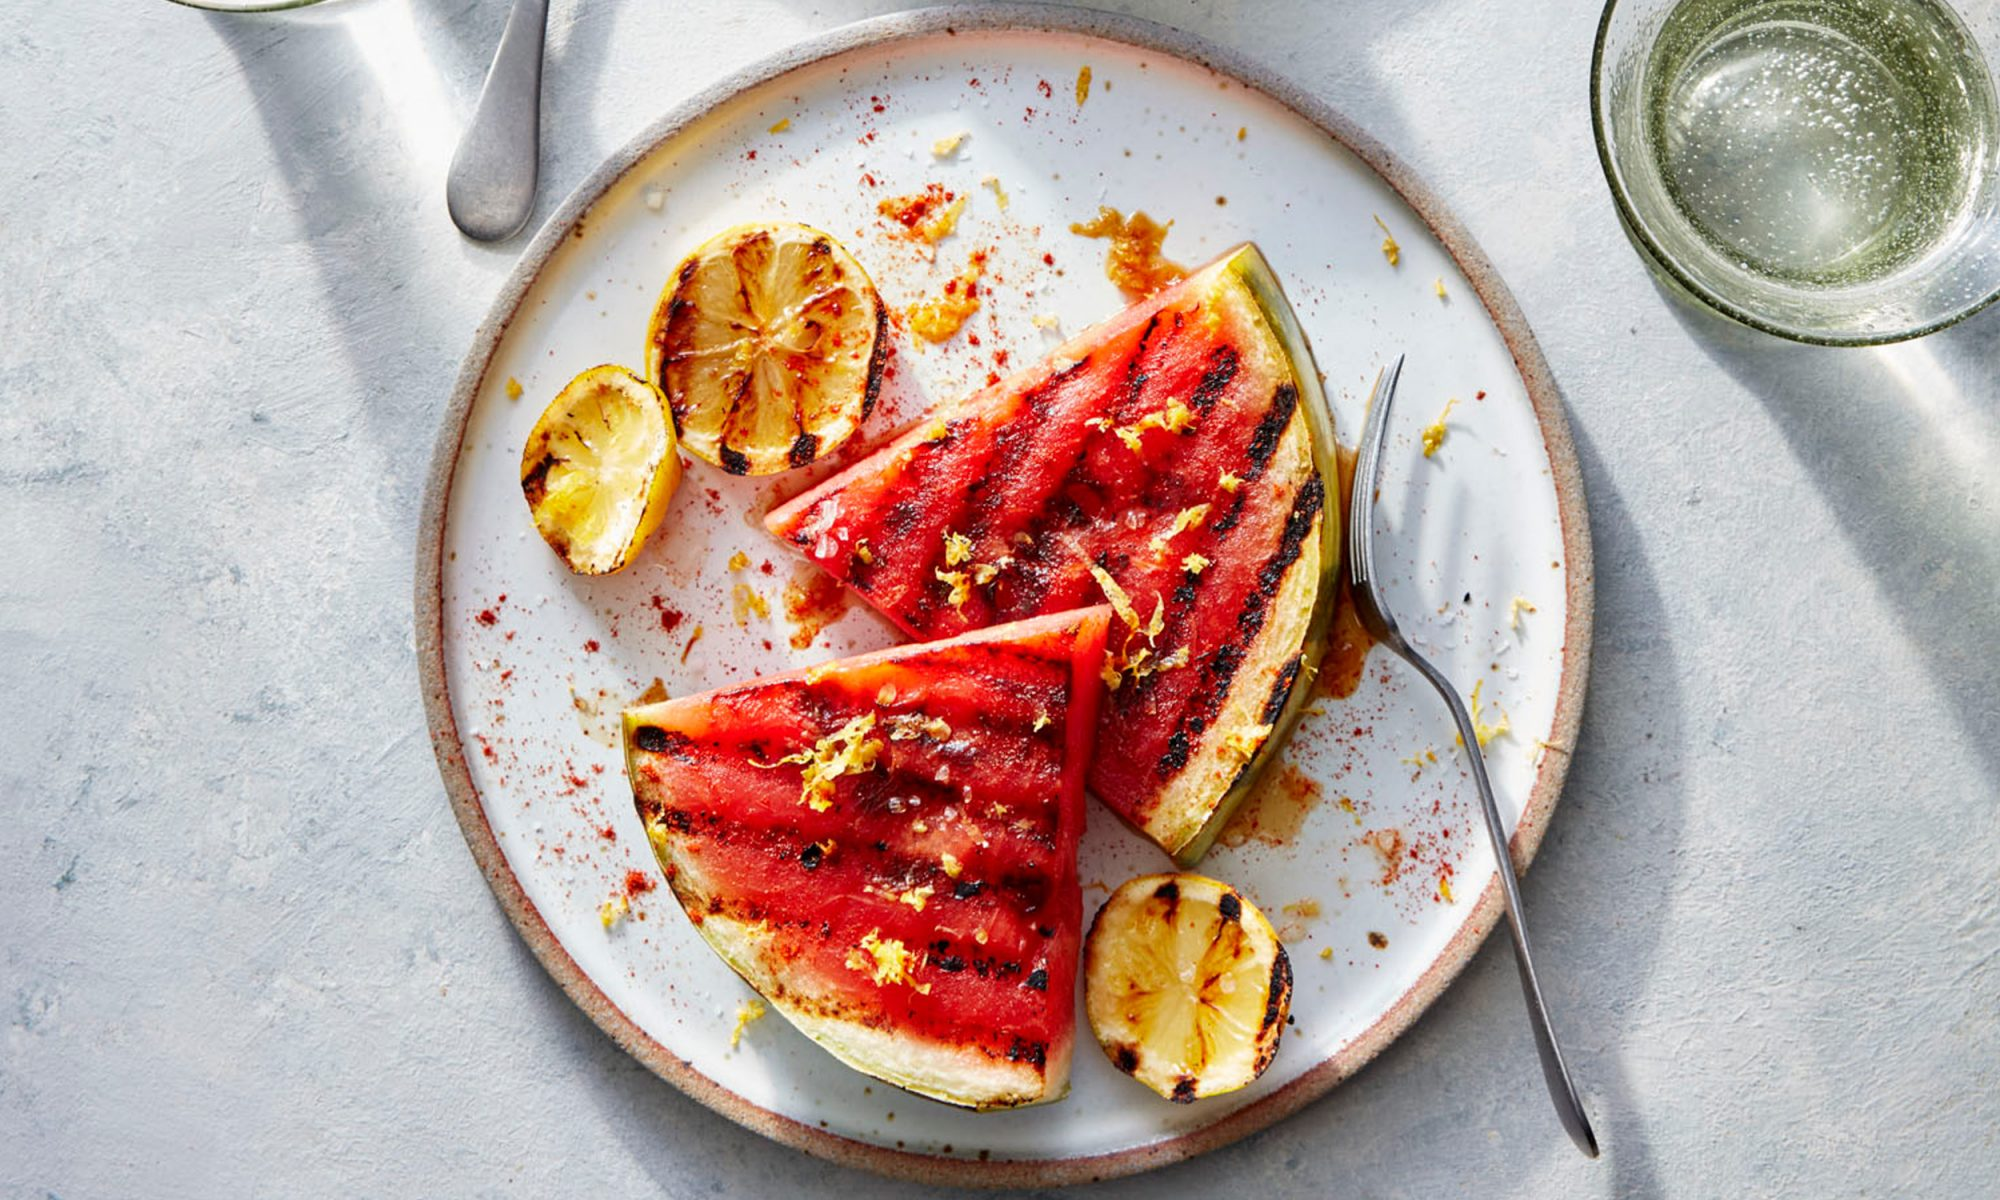 Grilled Watermelon Is the Ultimate Summer Snack